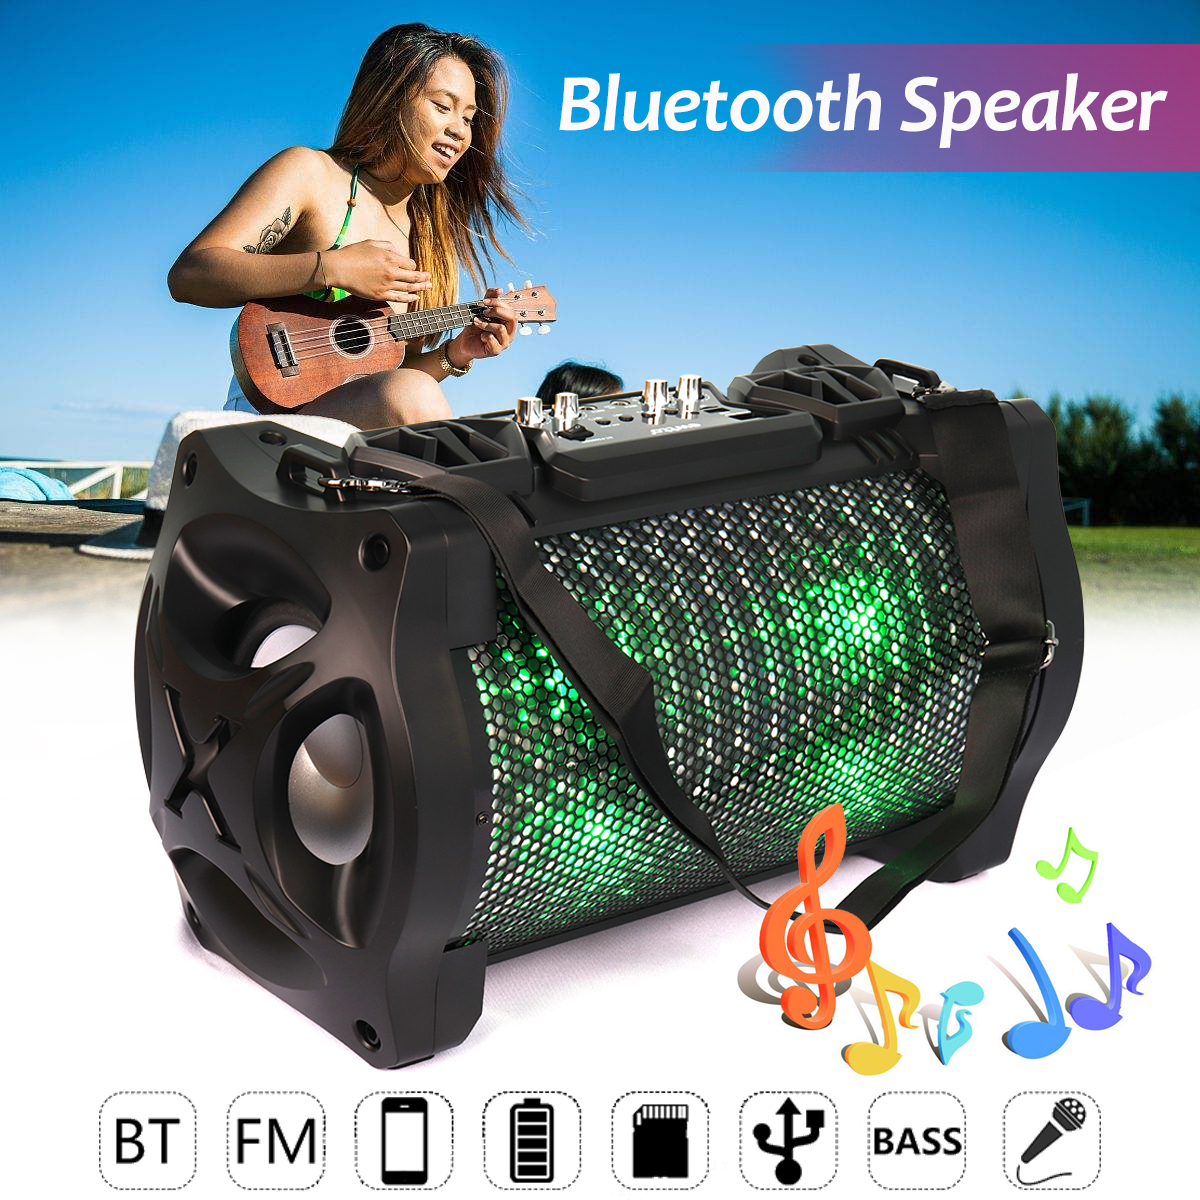 Outdoor Portable Subwoofer Bluetooth Speaker Karabale with Microphone Super Bass Stereo FM Radio AUX/USB/TF Card Music Player super bass outdoor bluetooth speaker wireless sports portable subwoofer bike car music speakers tf card aux mp3 player